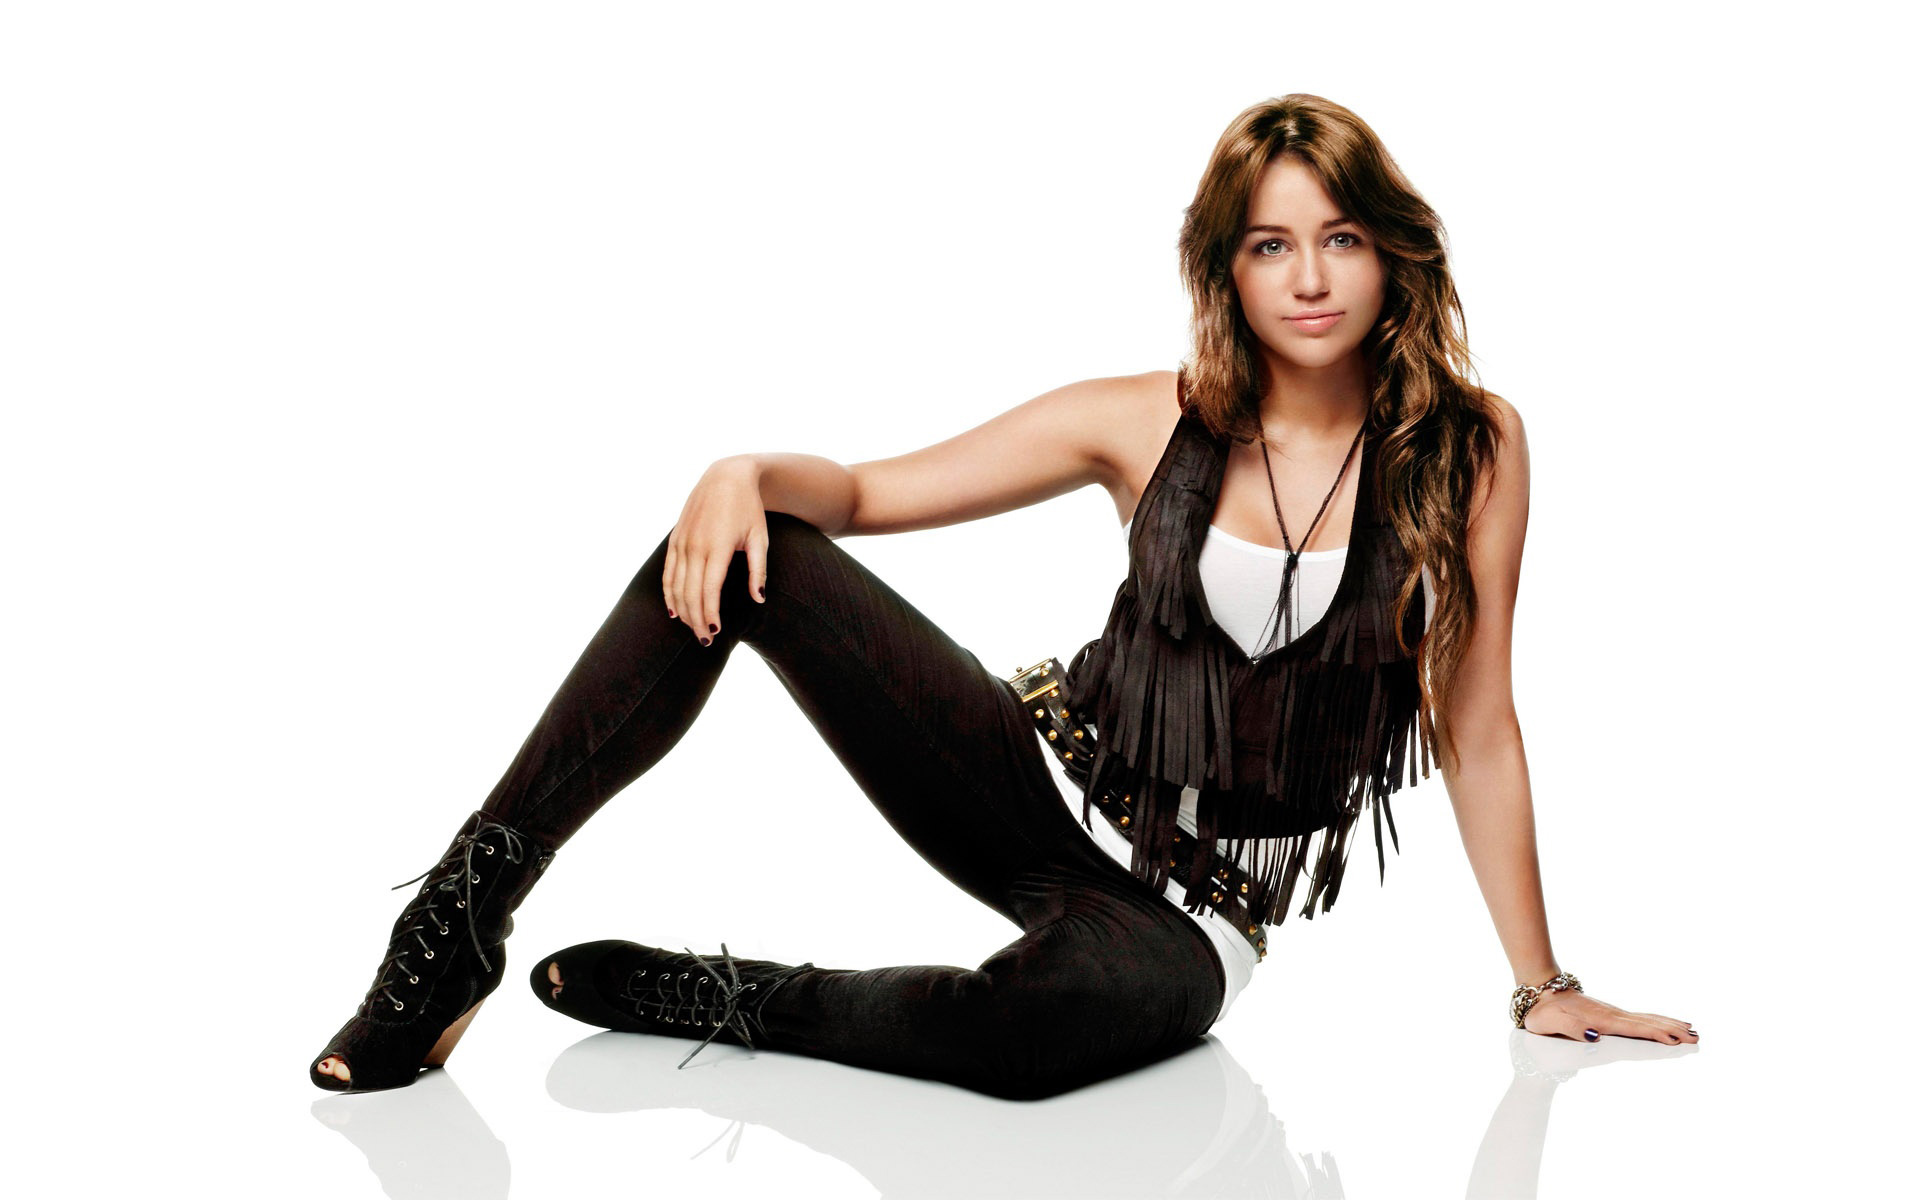 Miley Cyrus New Photoshoot Wallpapers HD Wallpapers 1920x1200